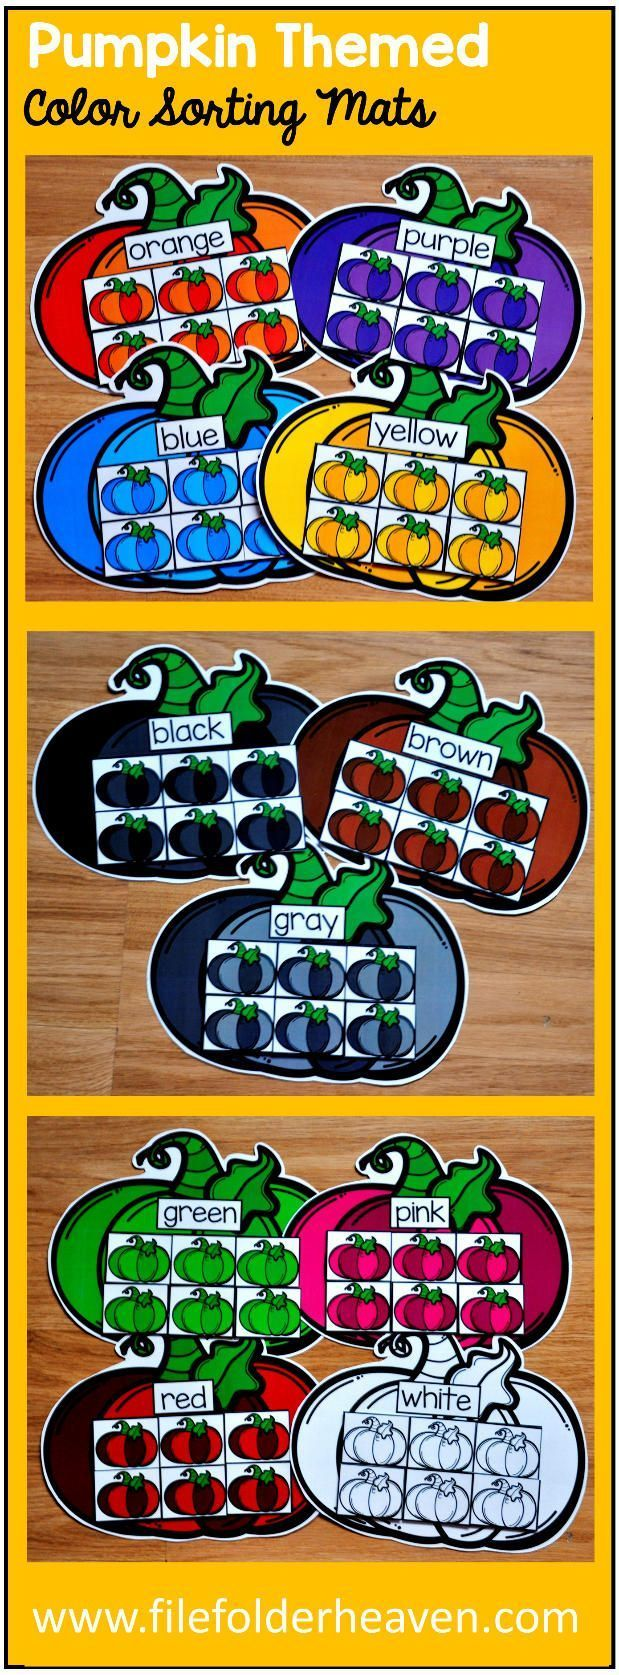 These Pumpkin Themed Color Sorting Mats include 11 unique sorting mats that focus on sorting pumpkins by color.  In a center or independent work station, students sort colored pumpkins into the mats that are the same color. Colored mats included are:  red blue green orange yellow pink purple brown gray black  white